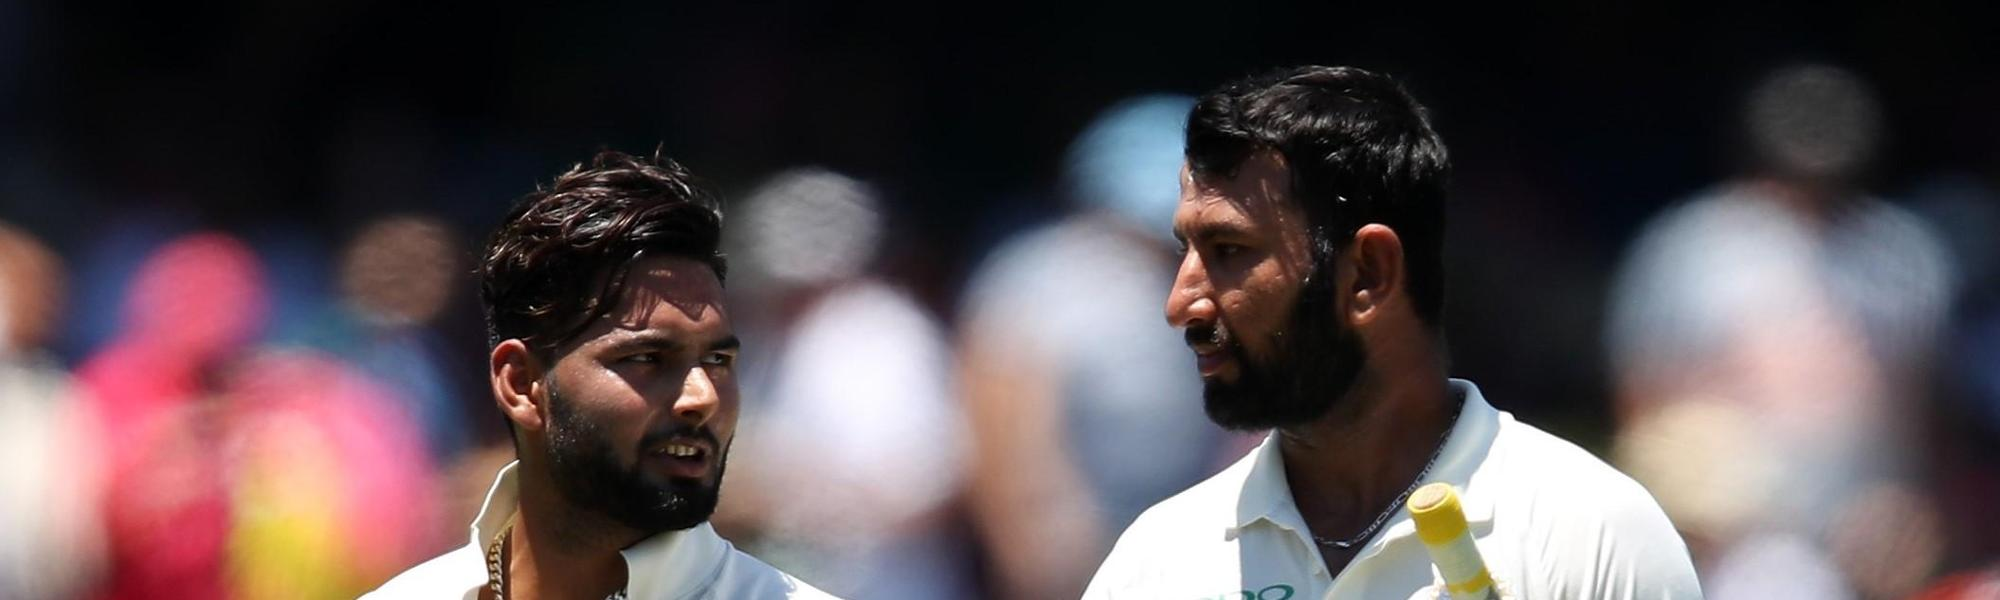 Pant and Pujara